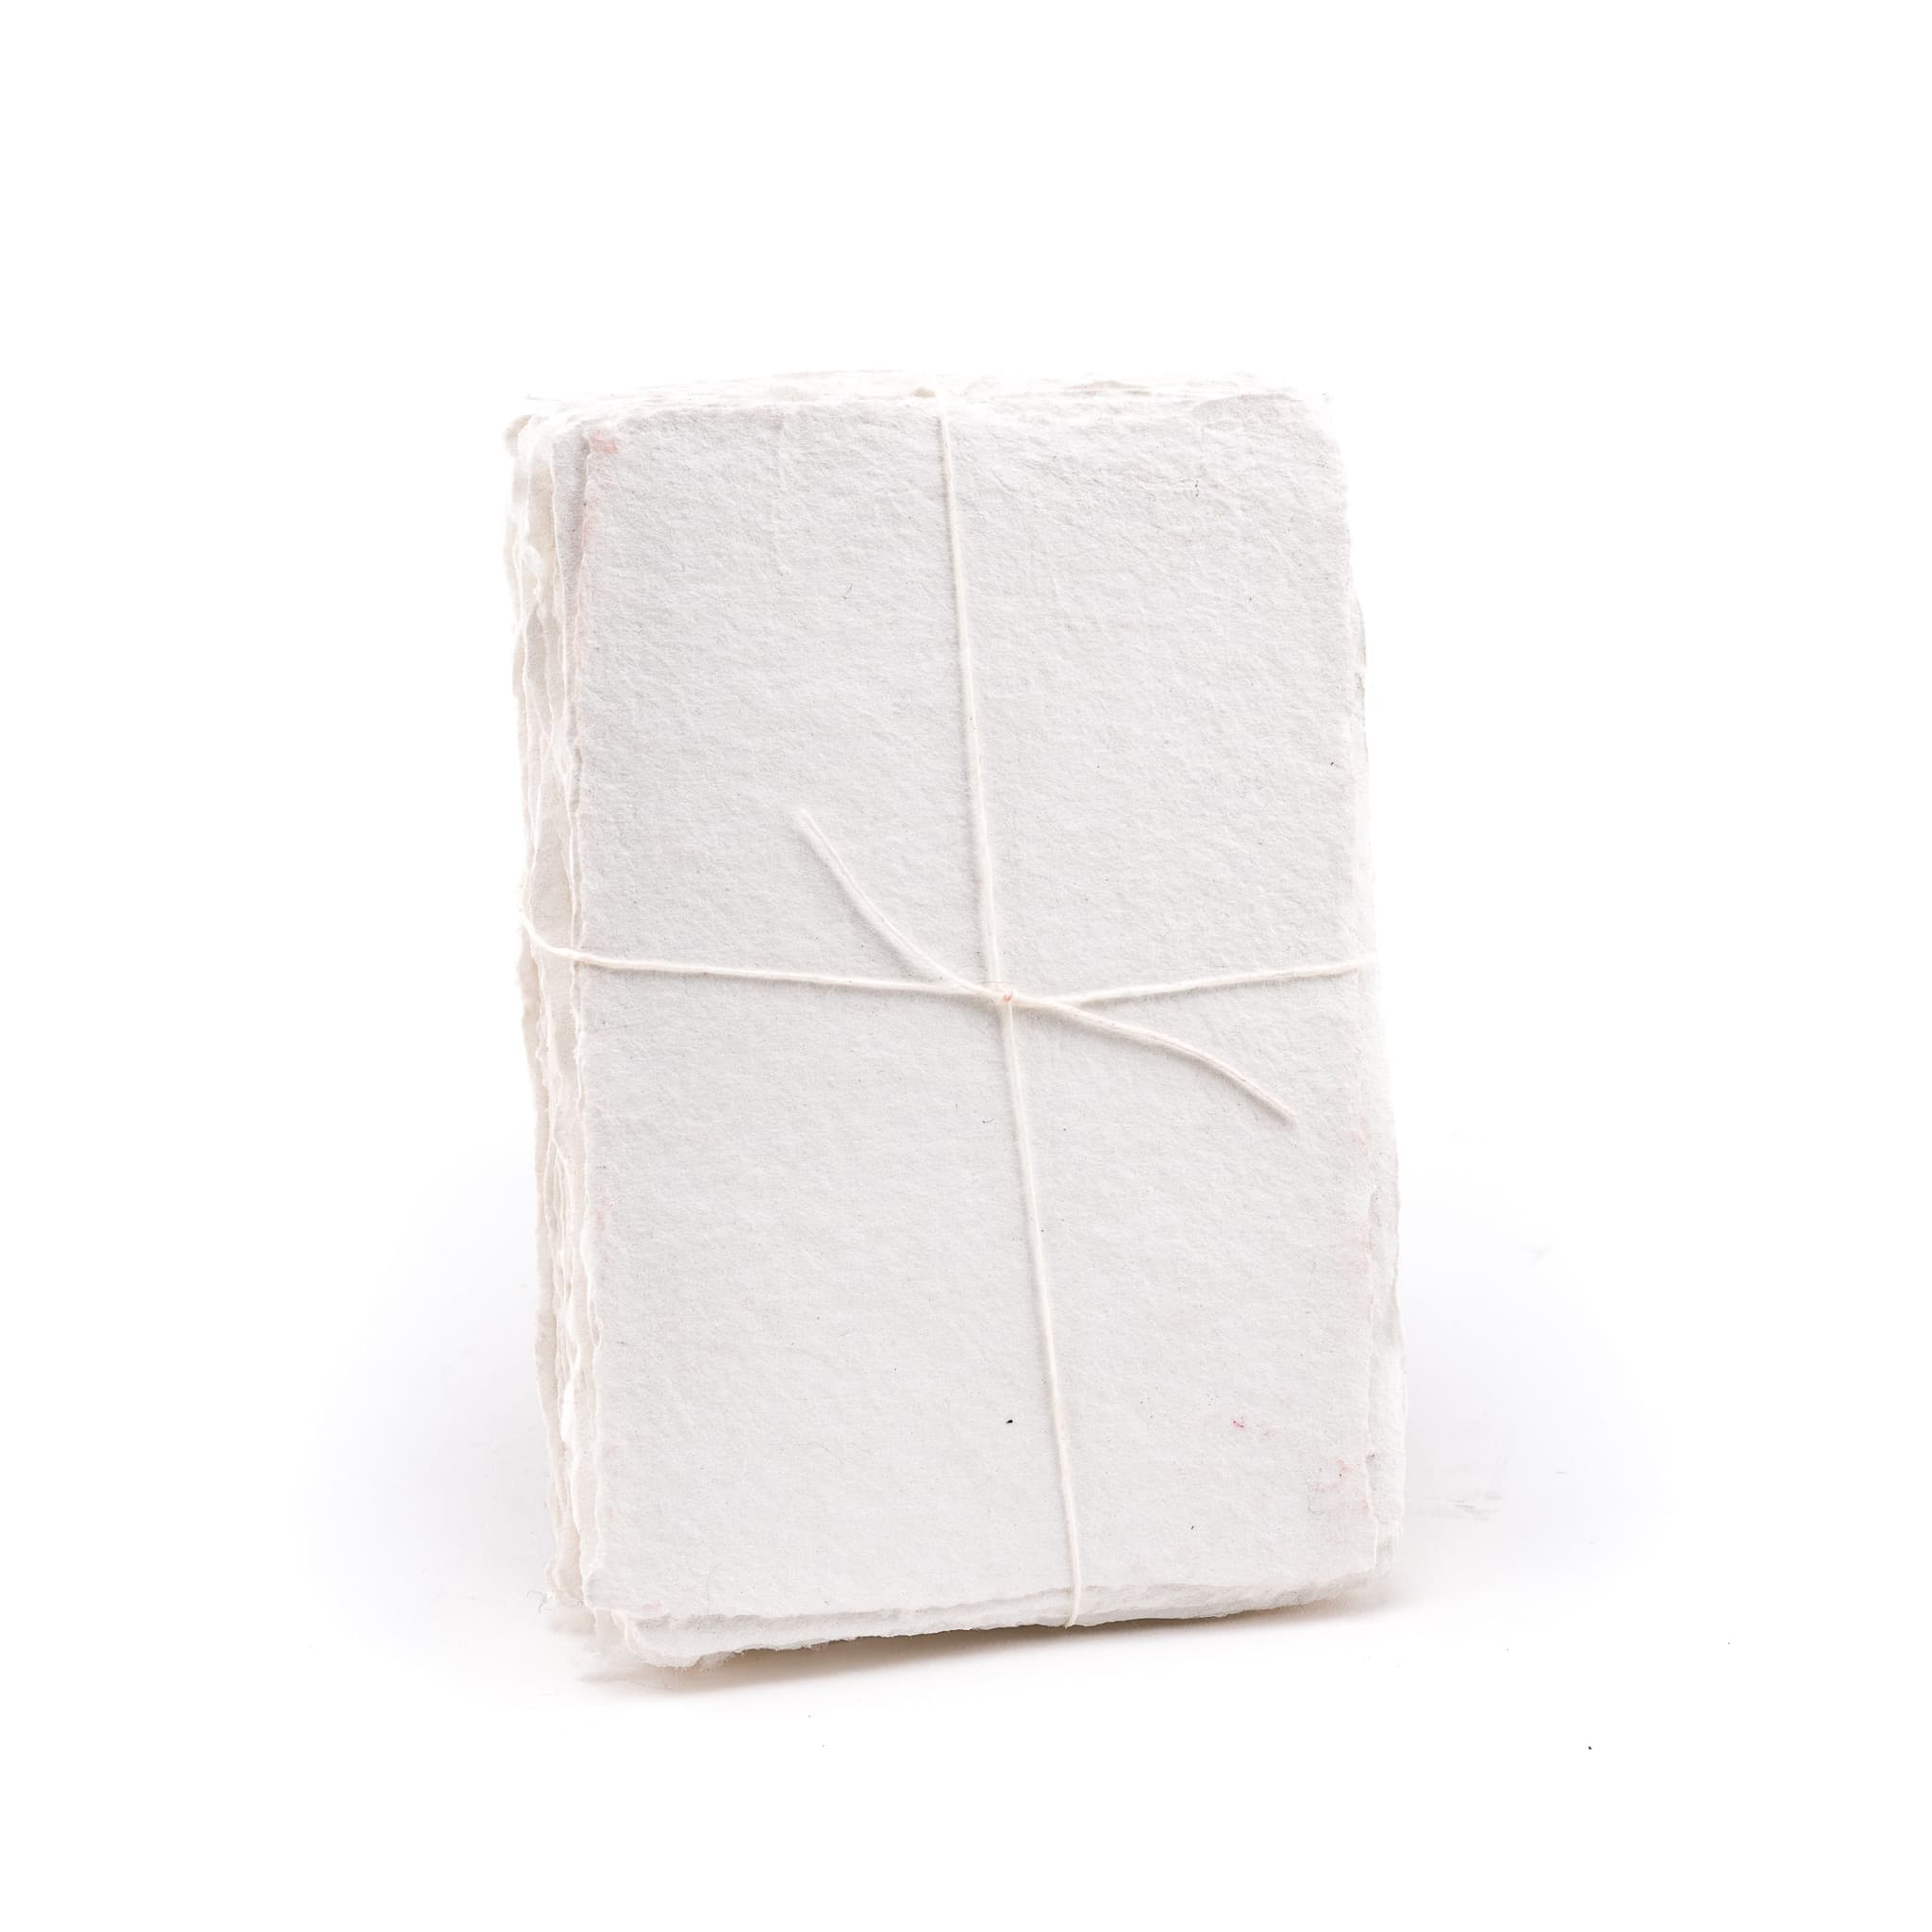 Pack of white shimmering handmade paper made with 100% cotton recycled from the apparel industry.